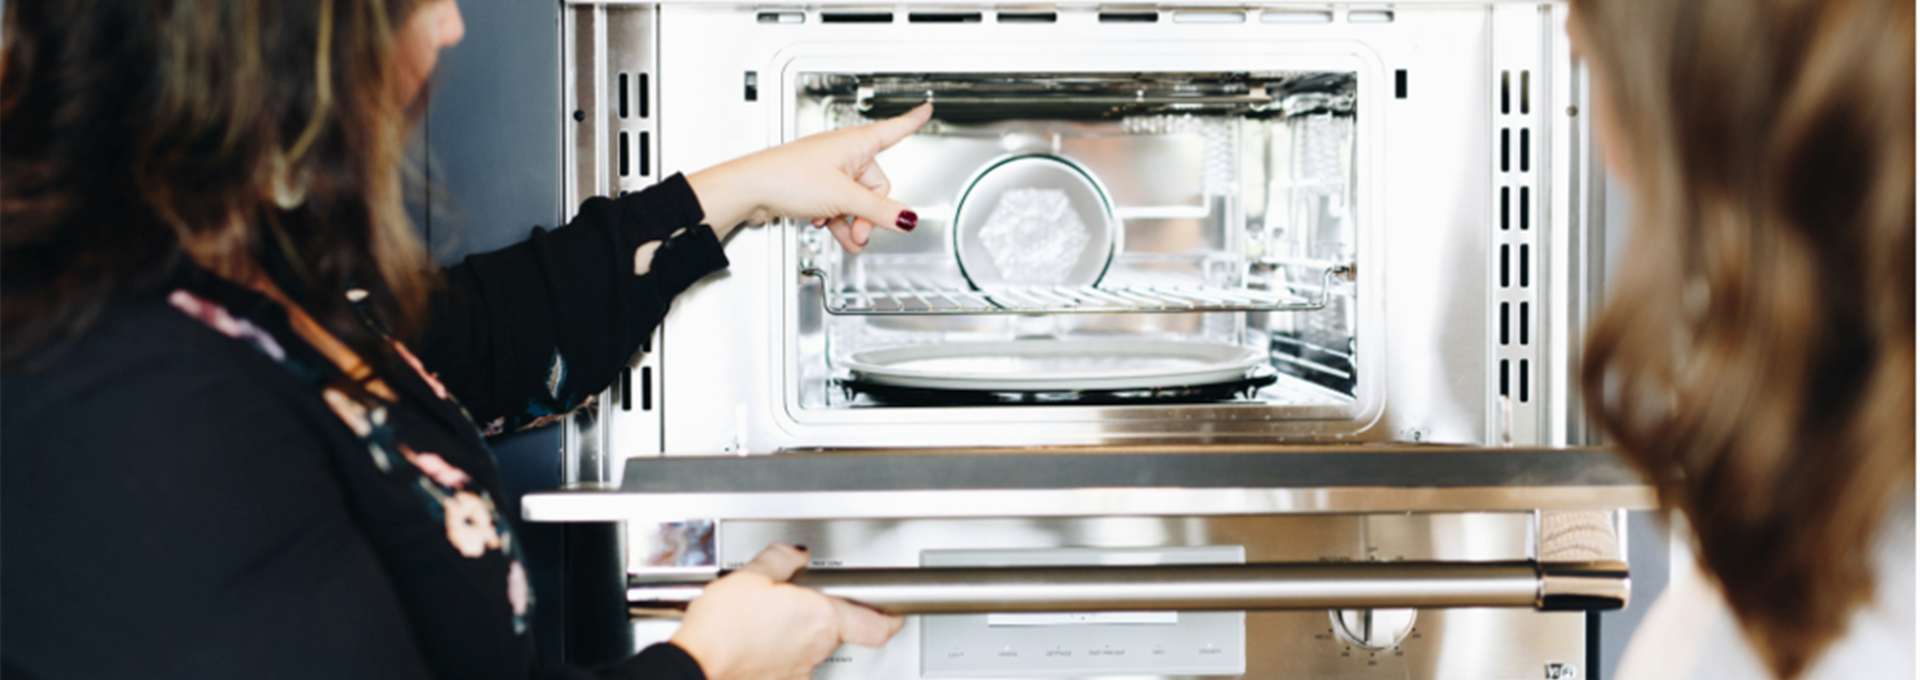 laura-engen-interior-design-industry-interview-how-to-pick-appliances-warner-stellian-steam-oven.png